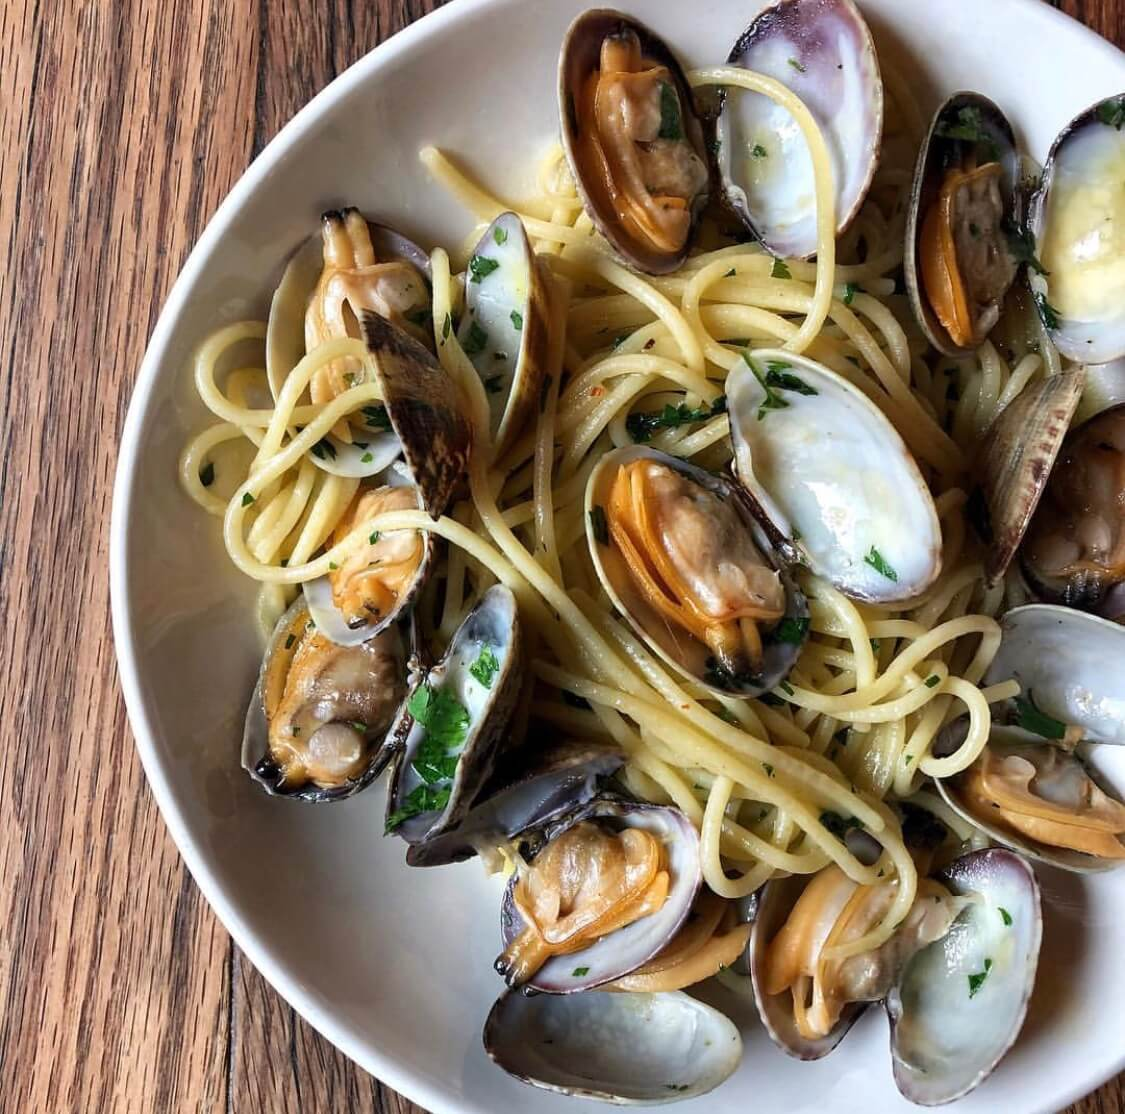 Inspired by Venice: Our Favorite Vongole Dishes in NYC